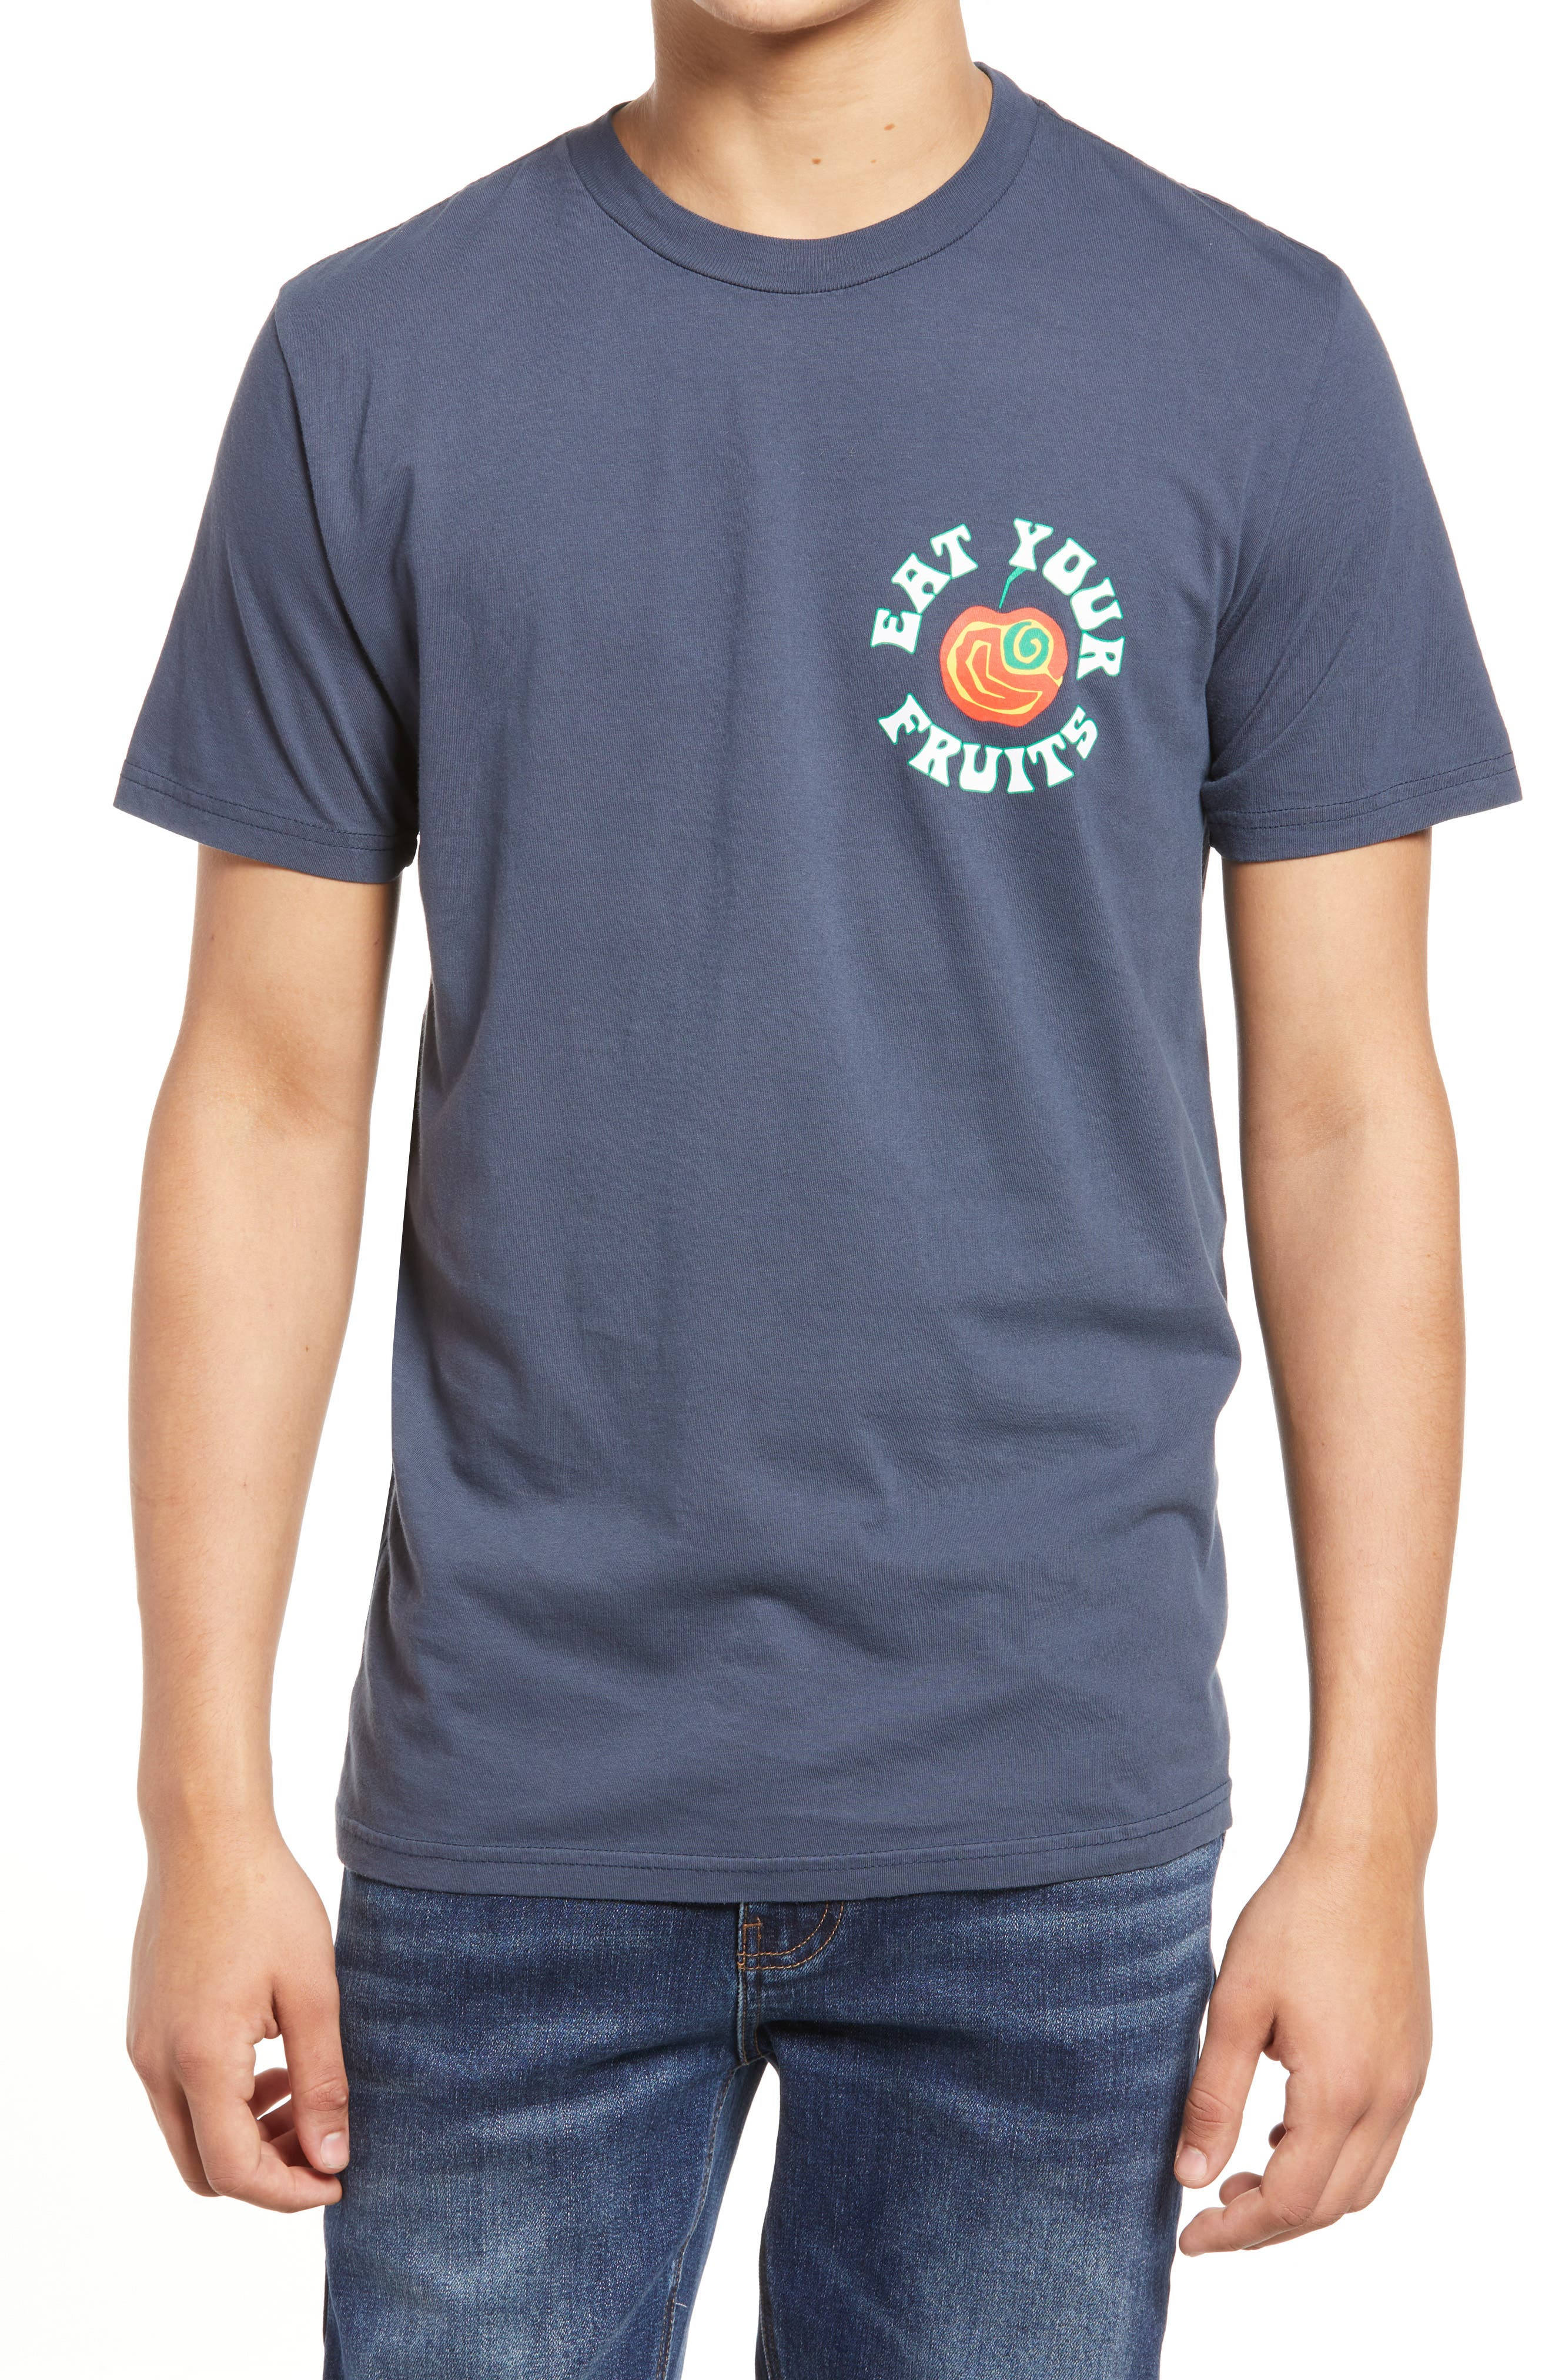 Men's Eat Your Fruits Cotton Graphic Tee